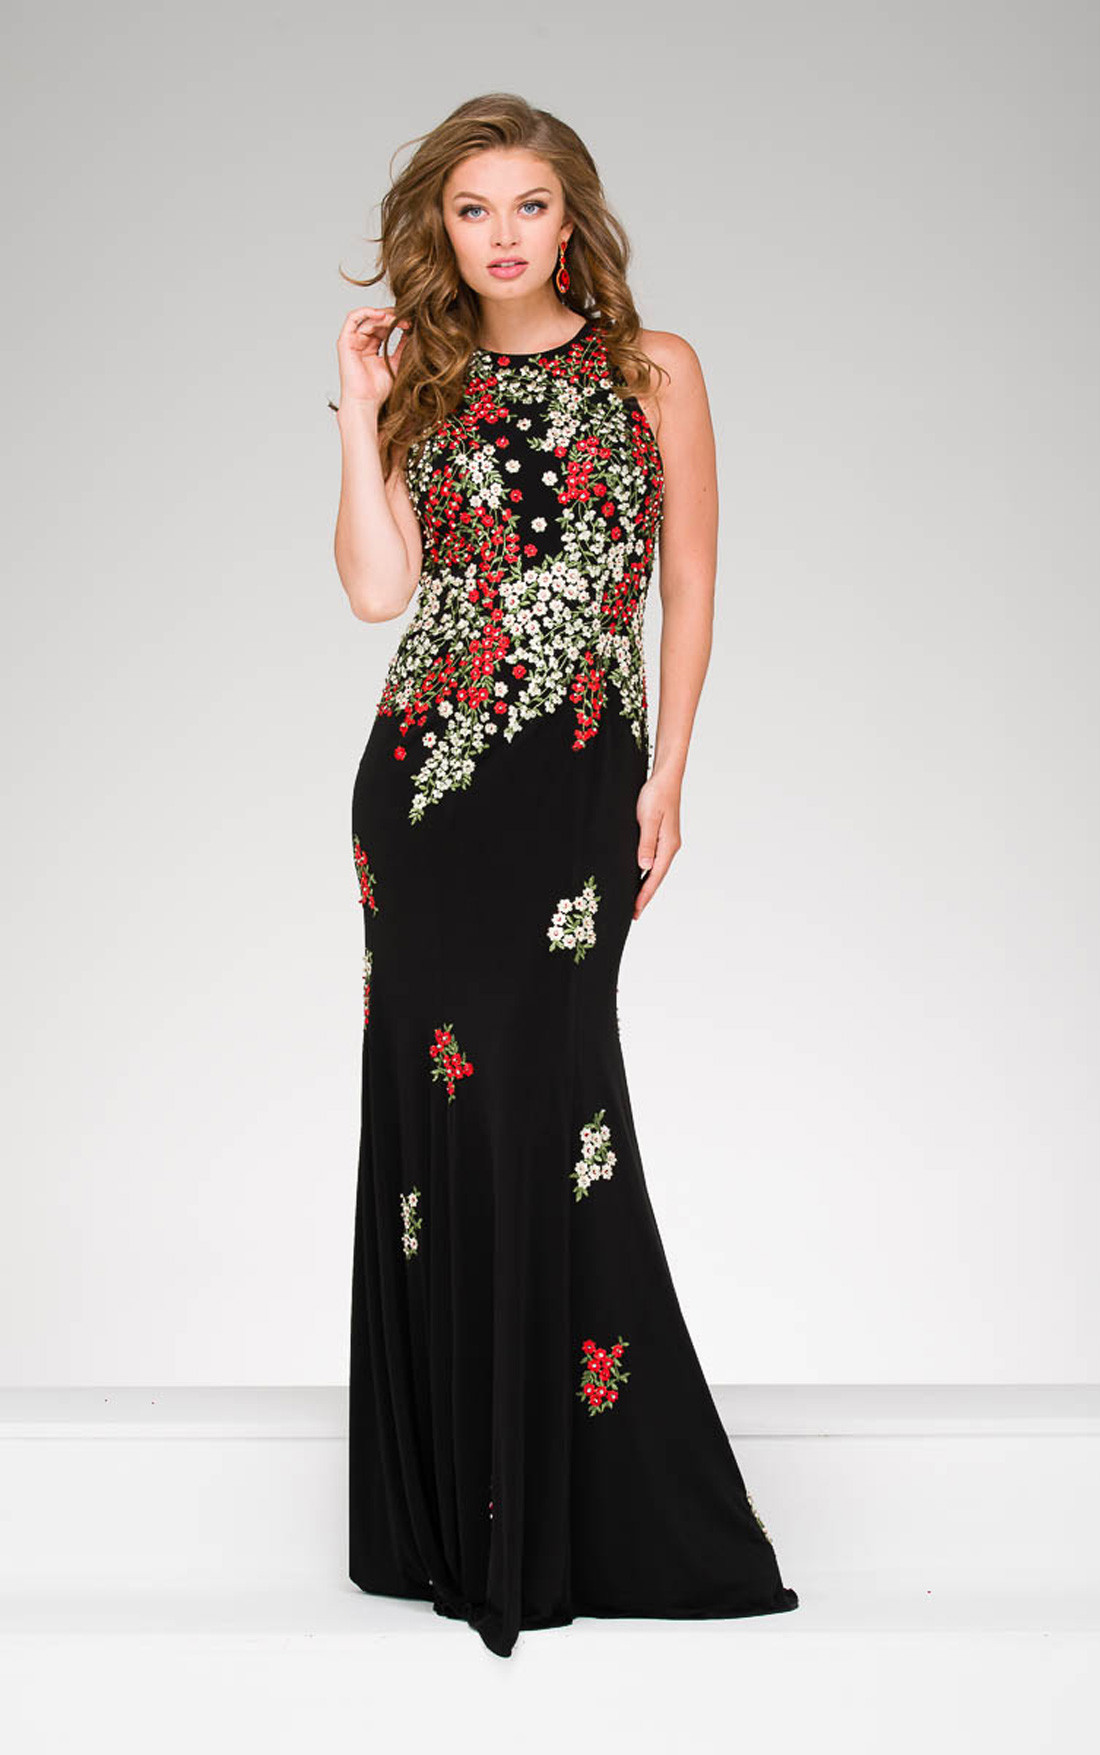 Jovani - Black Floral Halter Neck Dress (48104)